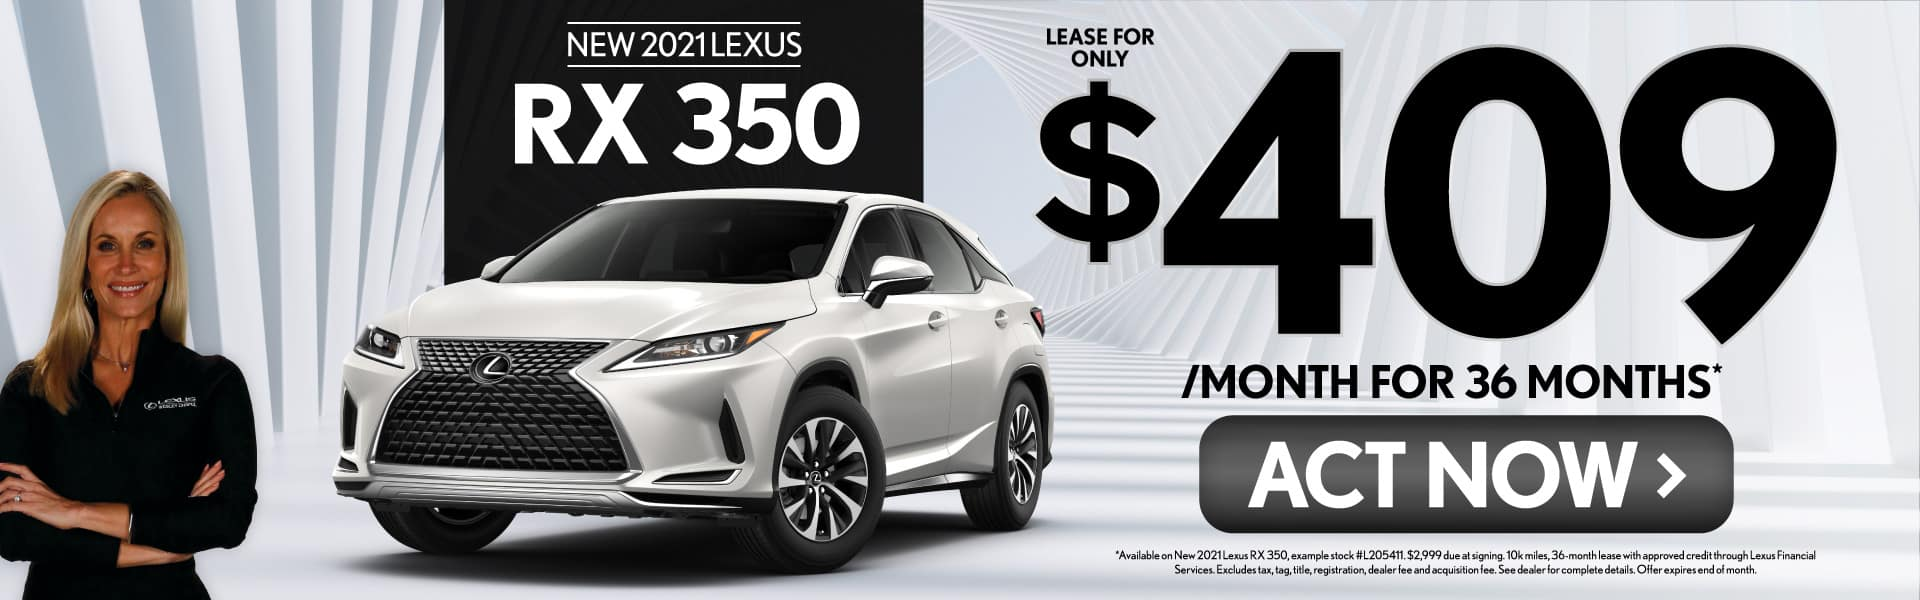 New 2021 Lexus RX 350 only $409/mo - ACT NOW